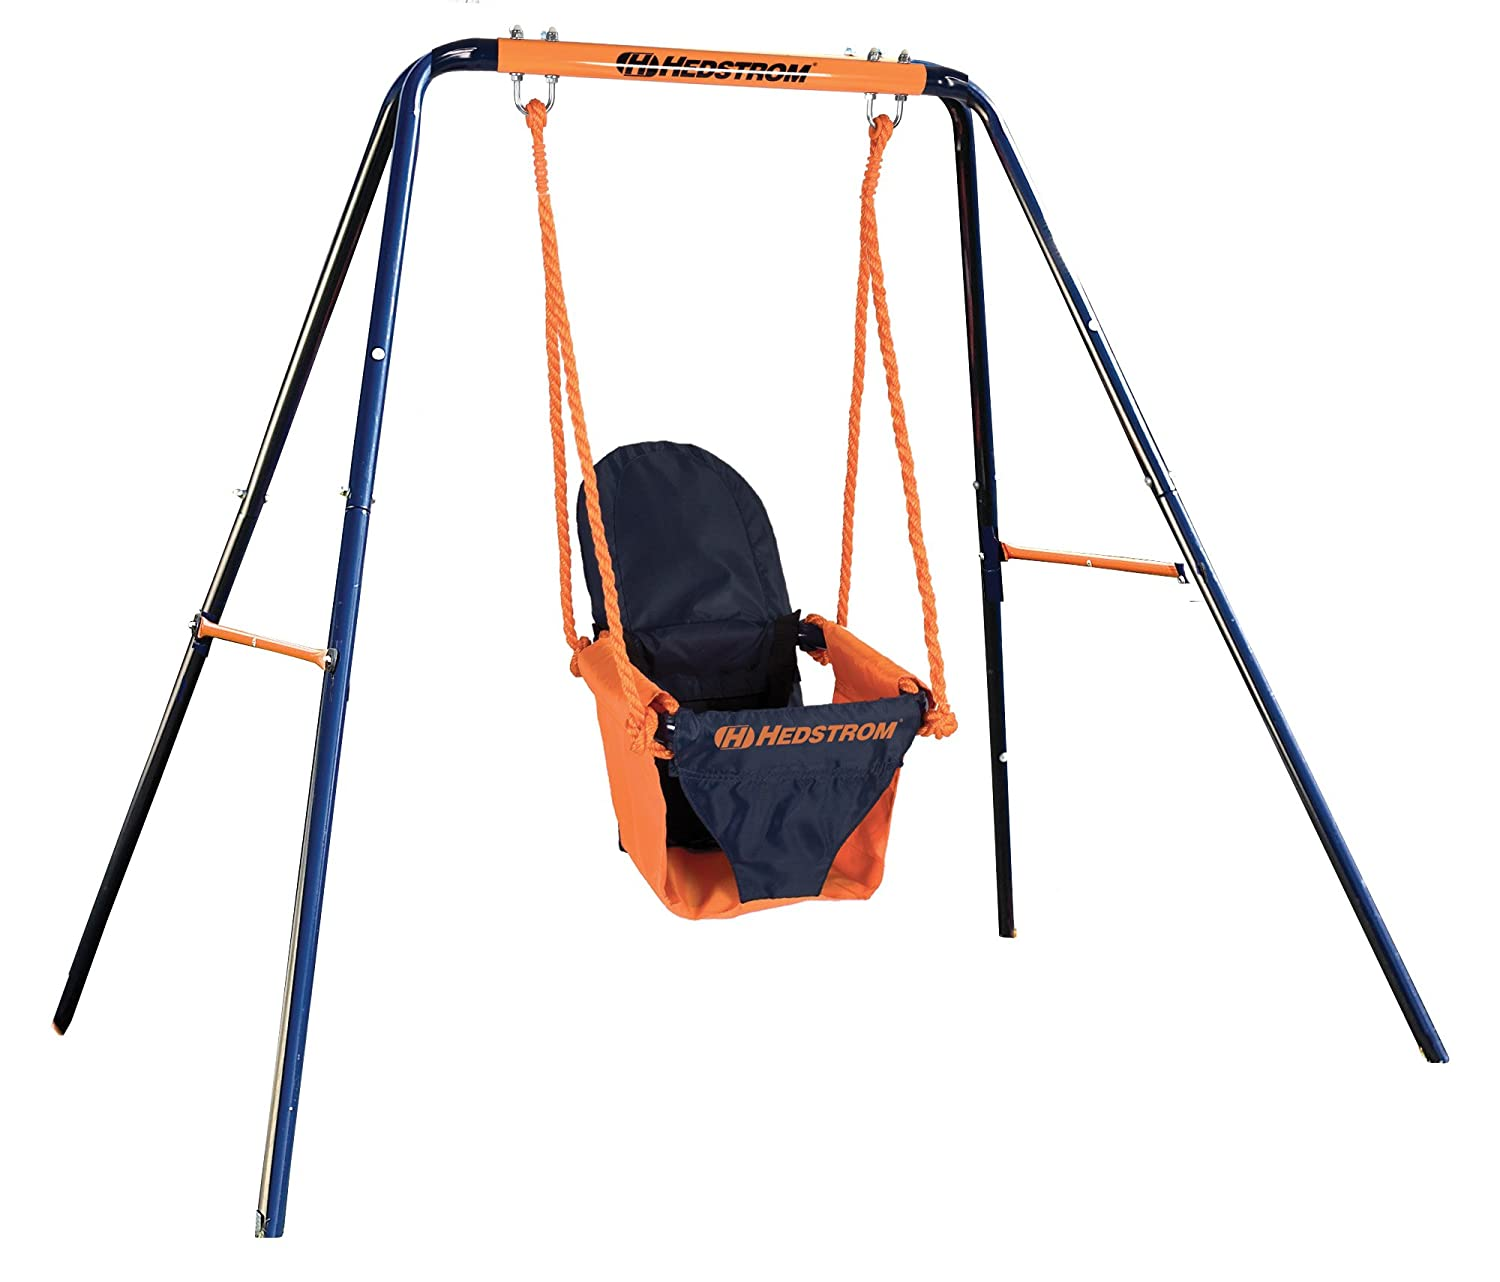 Hedstrom Toddler Swing Amazon Toys & Games